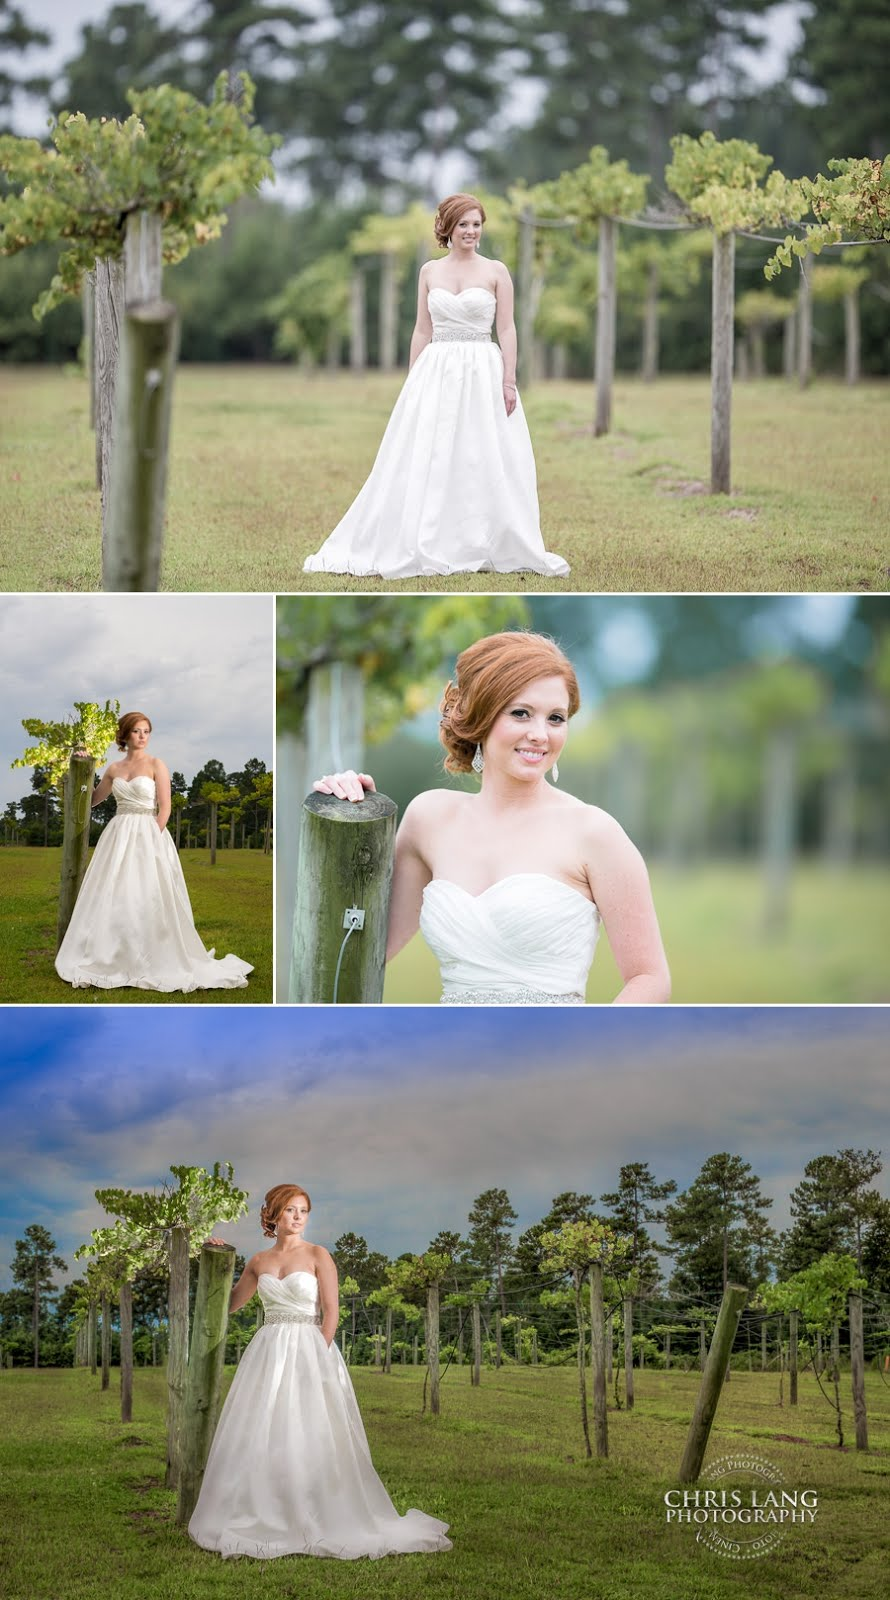 Wedding pictures at the Vineyards in River Landing Wallace NC - Wedding Photography Ideas